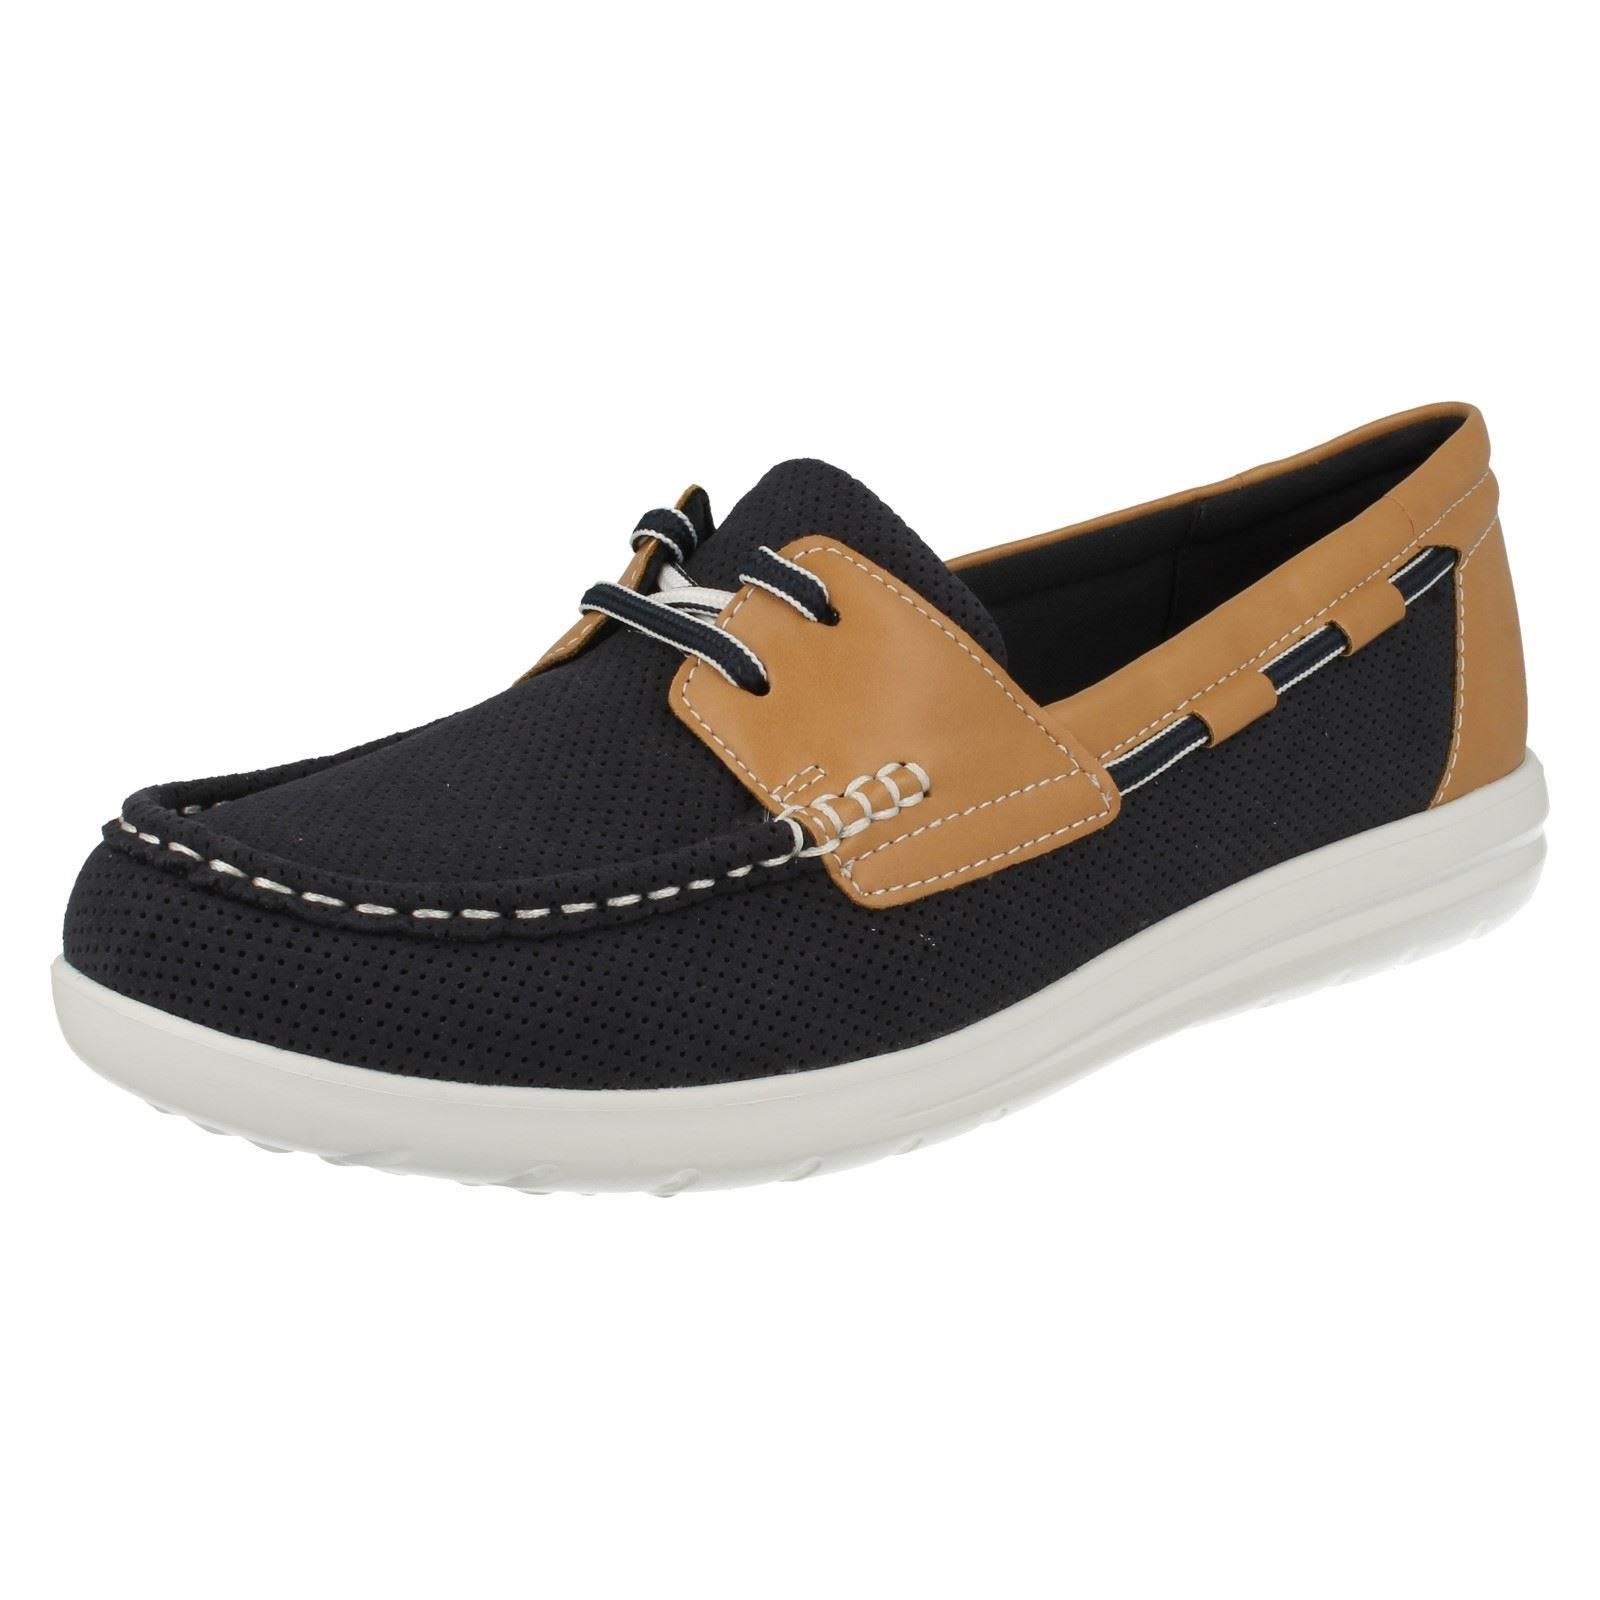 Clarks Womens Deck Shoes